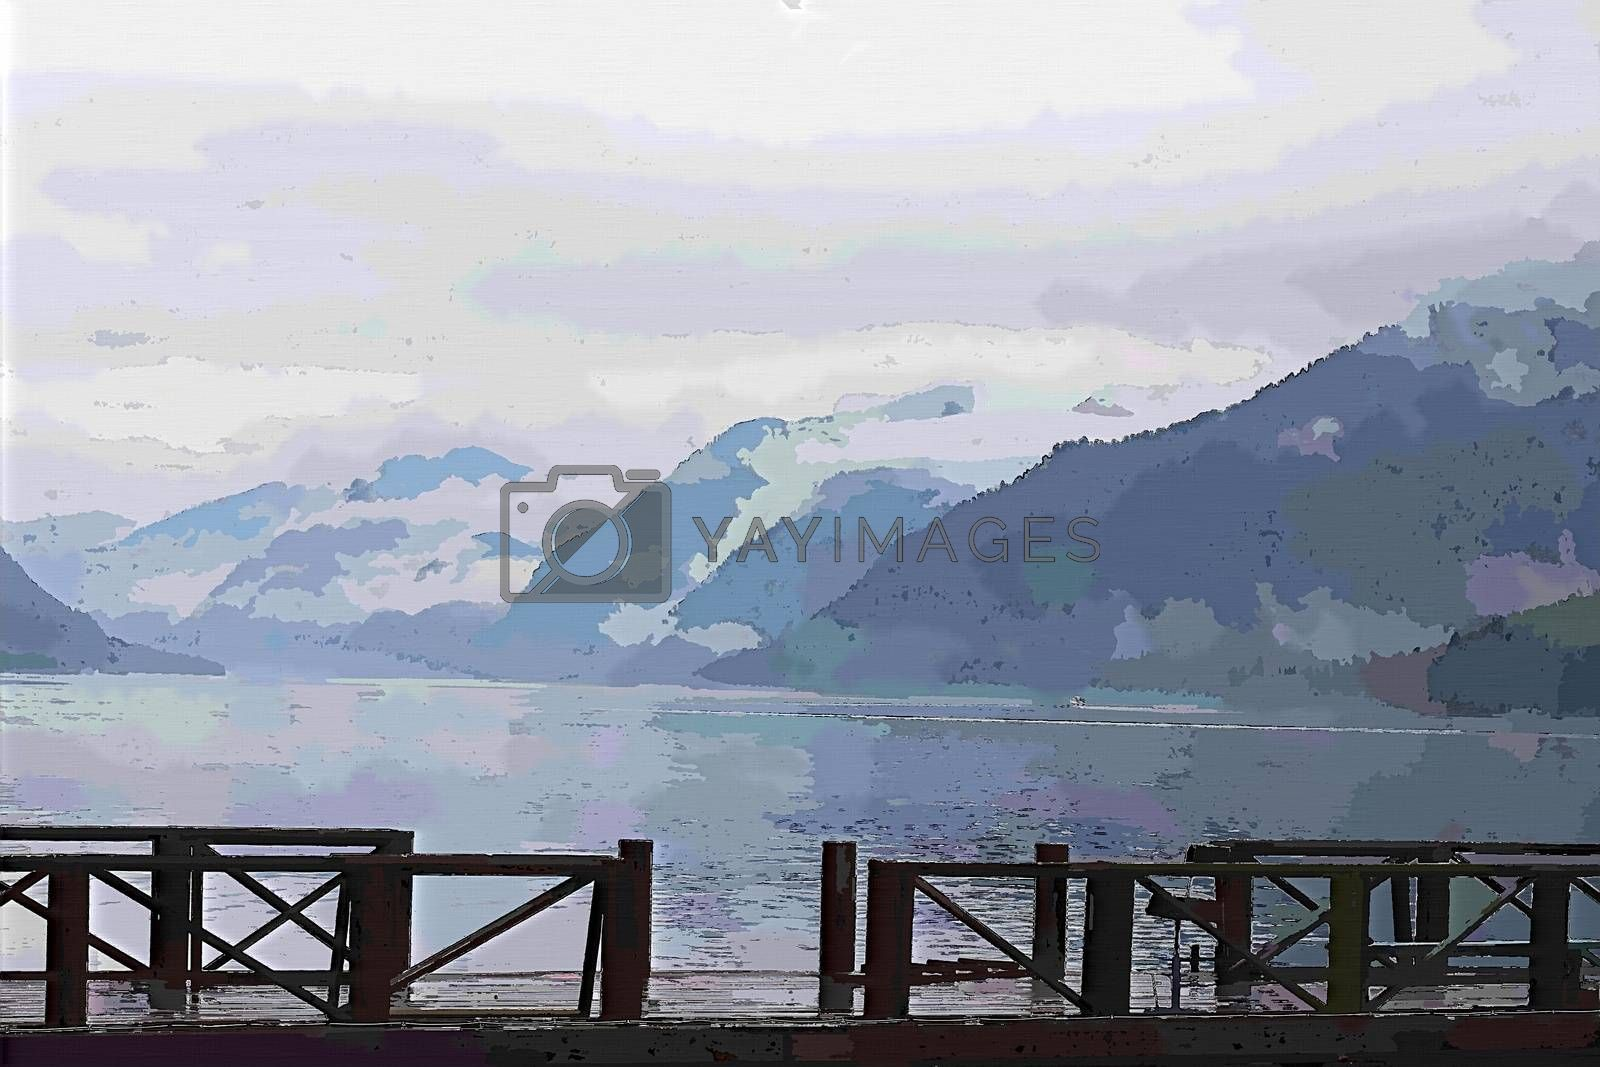 Royalty free image of A bridge over a body of water with a mountain in the background painting by balage941